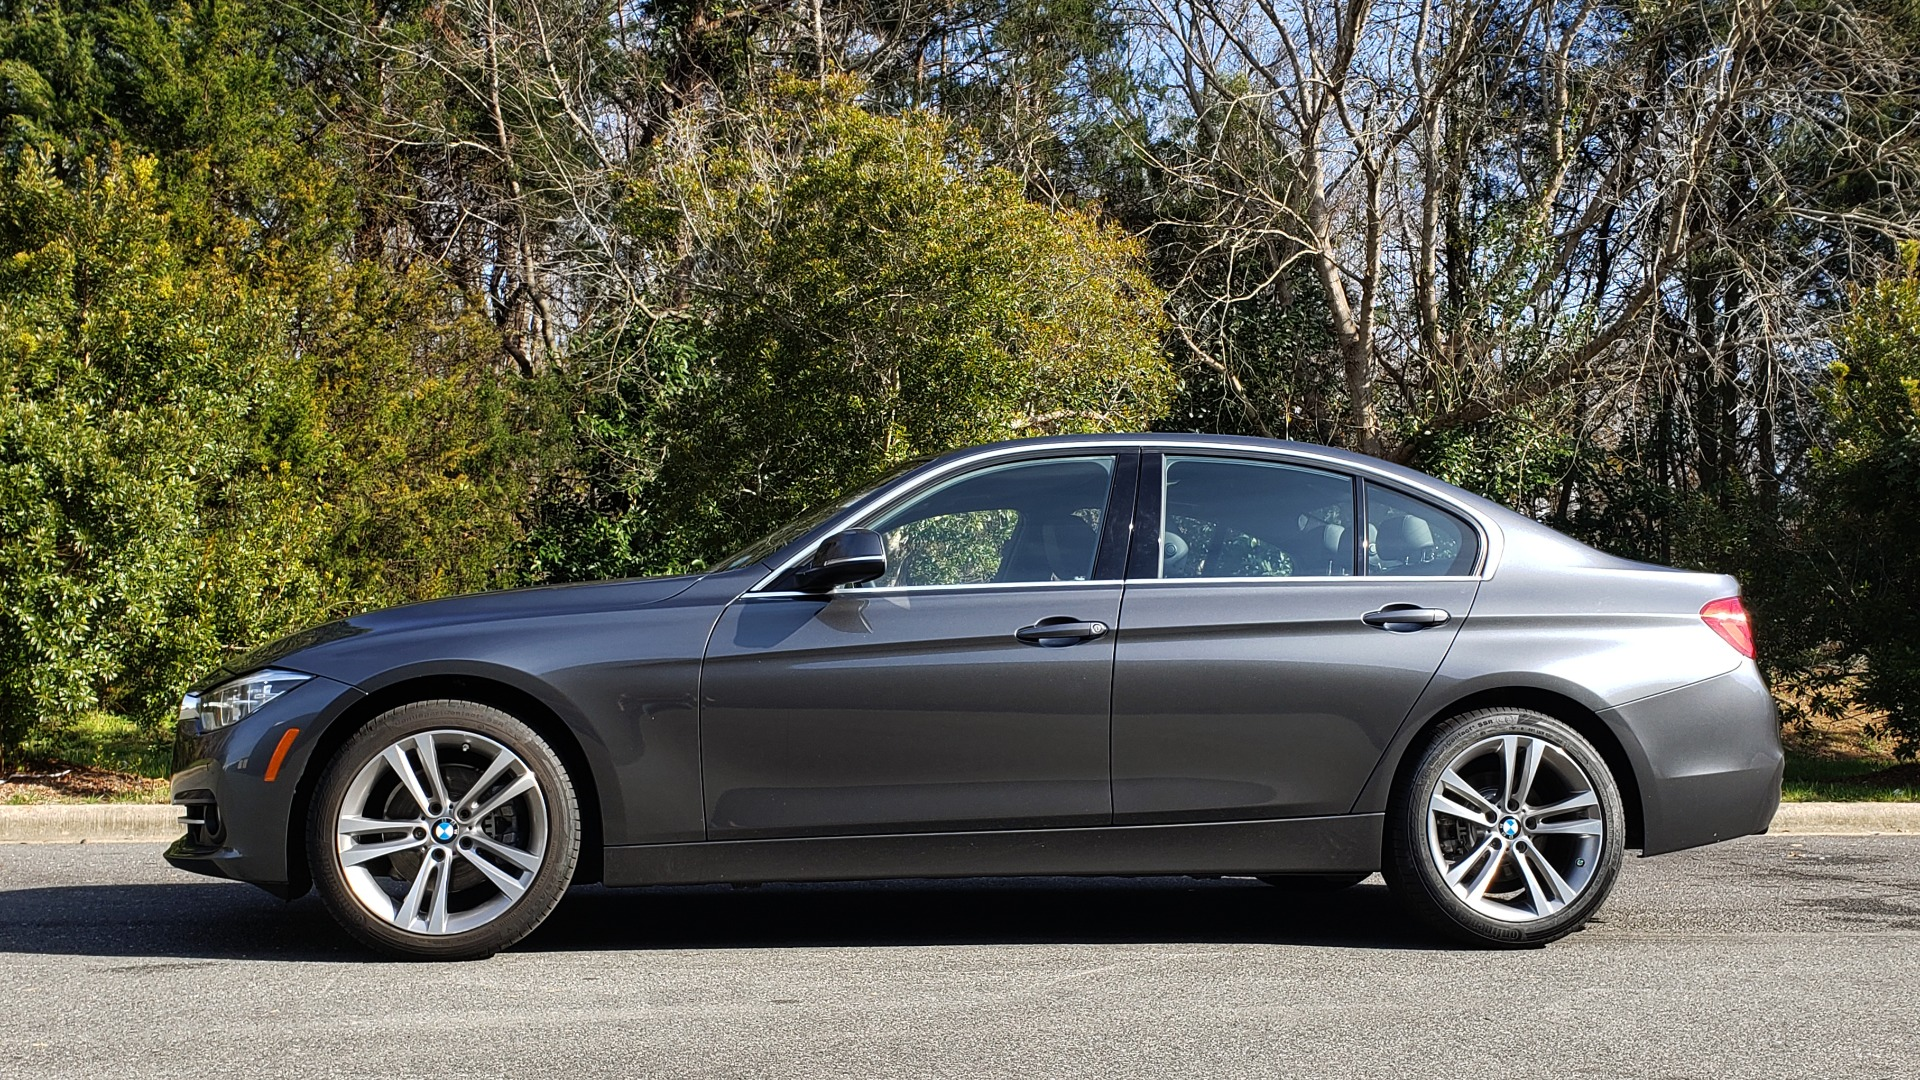 Used 2017 BMW 3 SERIES 330I PREMIUM / DRVR ASST / NAV / SUNROOF / HTD STS / REARVIEW for sale Sold at Formula Imports in Charlotte NC 28227 2